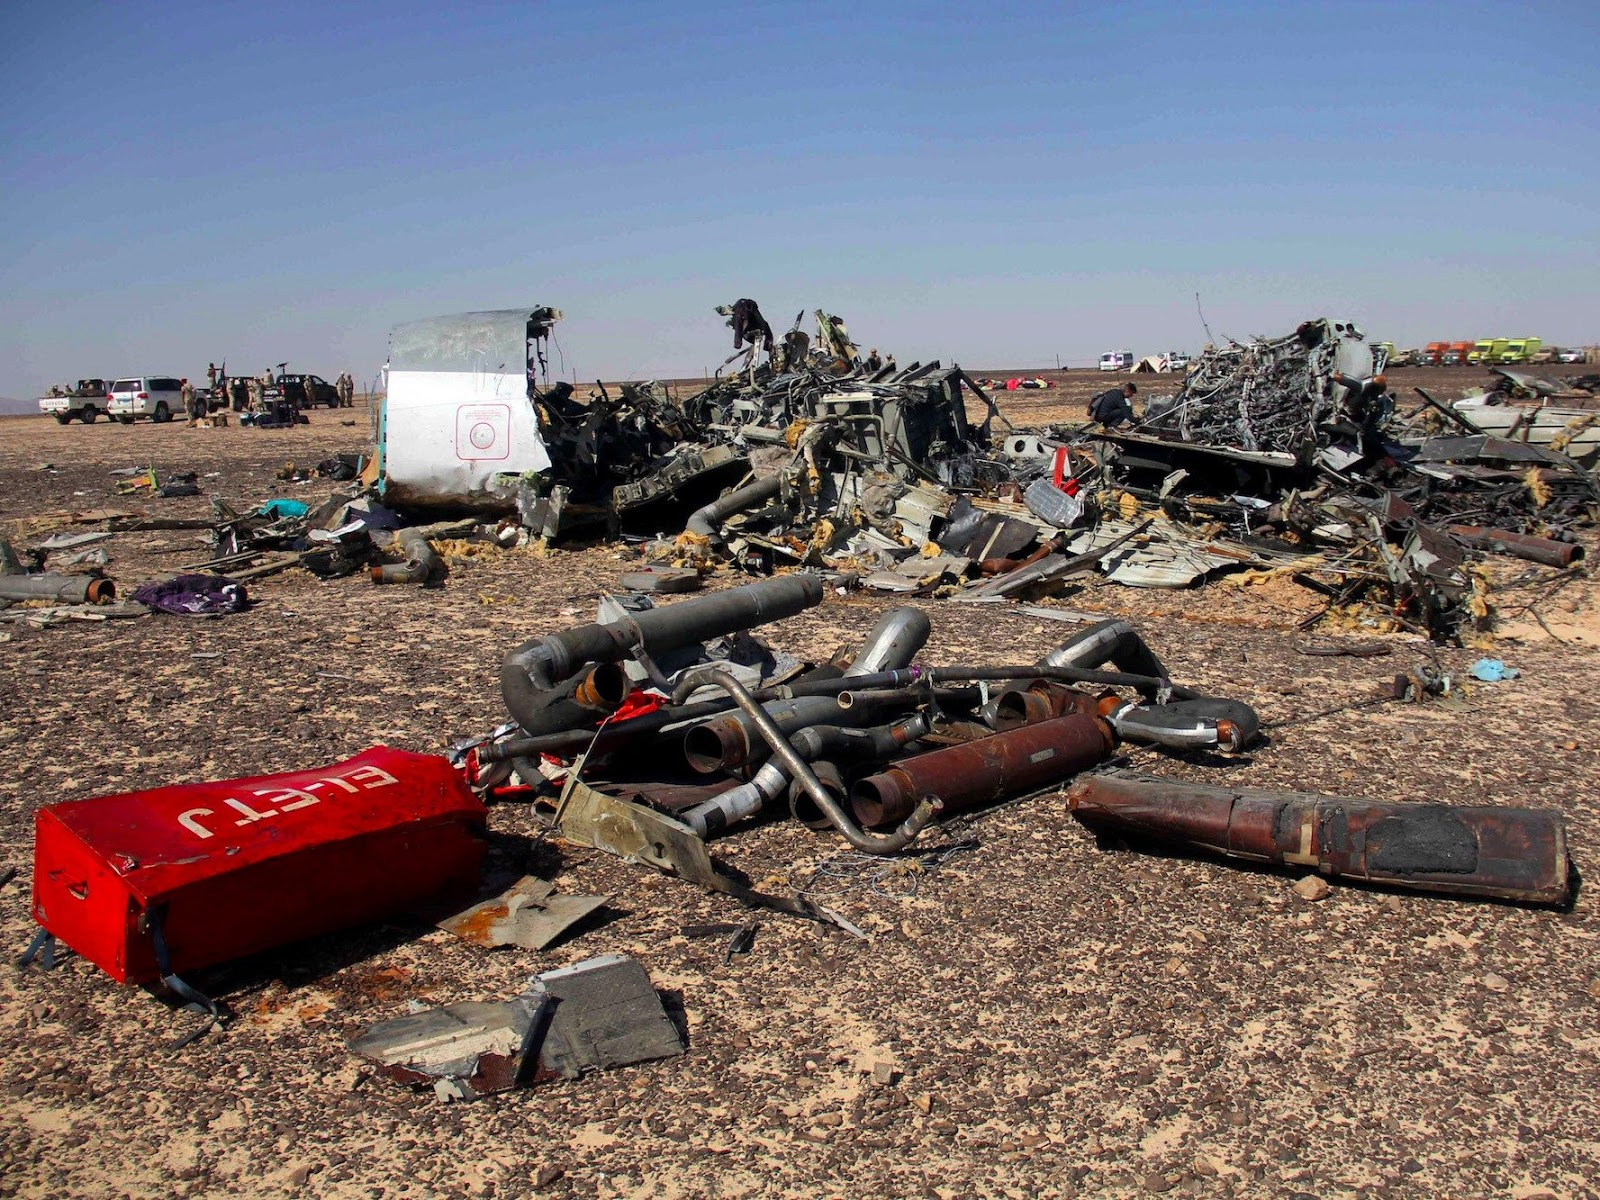 The History Behind ISIS. Their Latest Shocking Terrorist Attacks Around The World. - Russian airliner crashes in Egypt, October 31, 2015